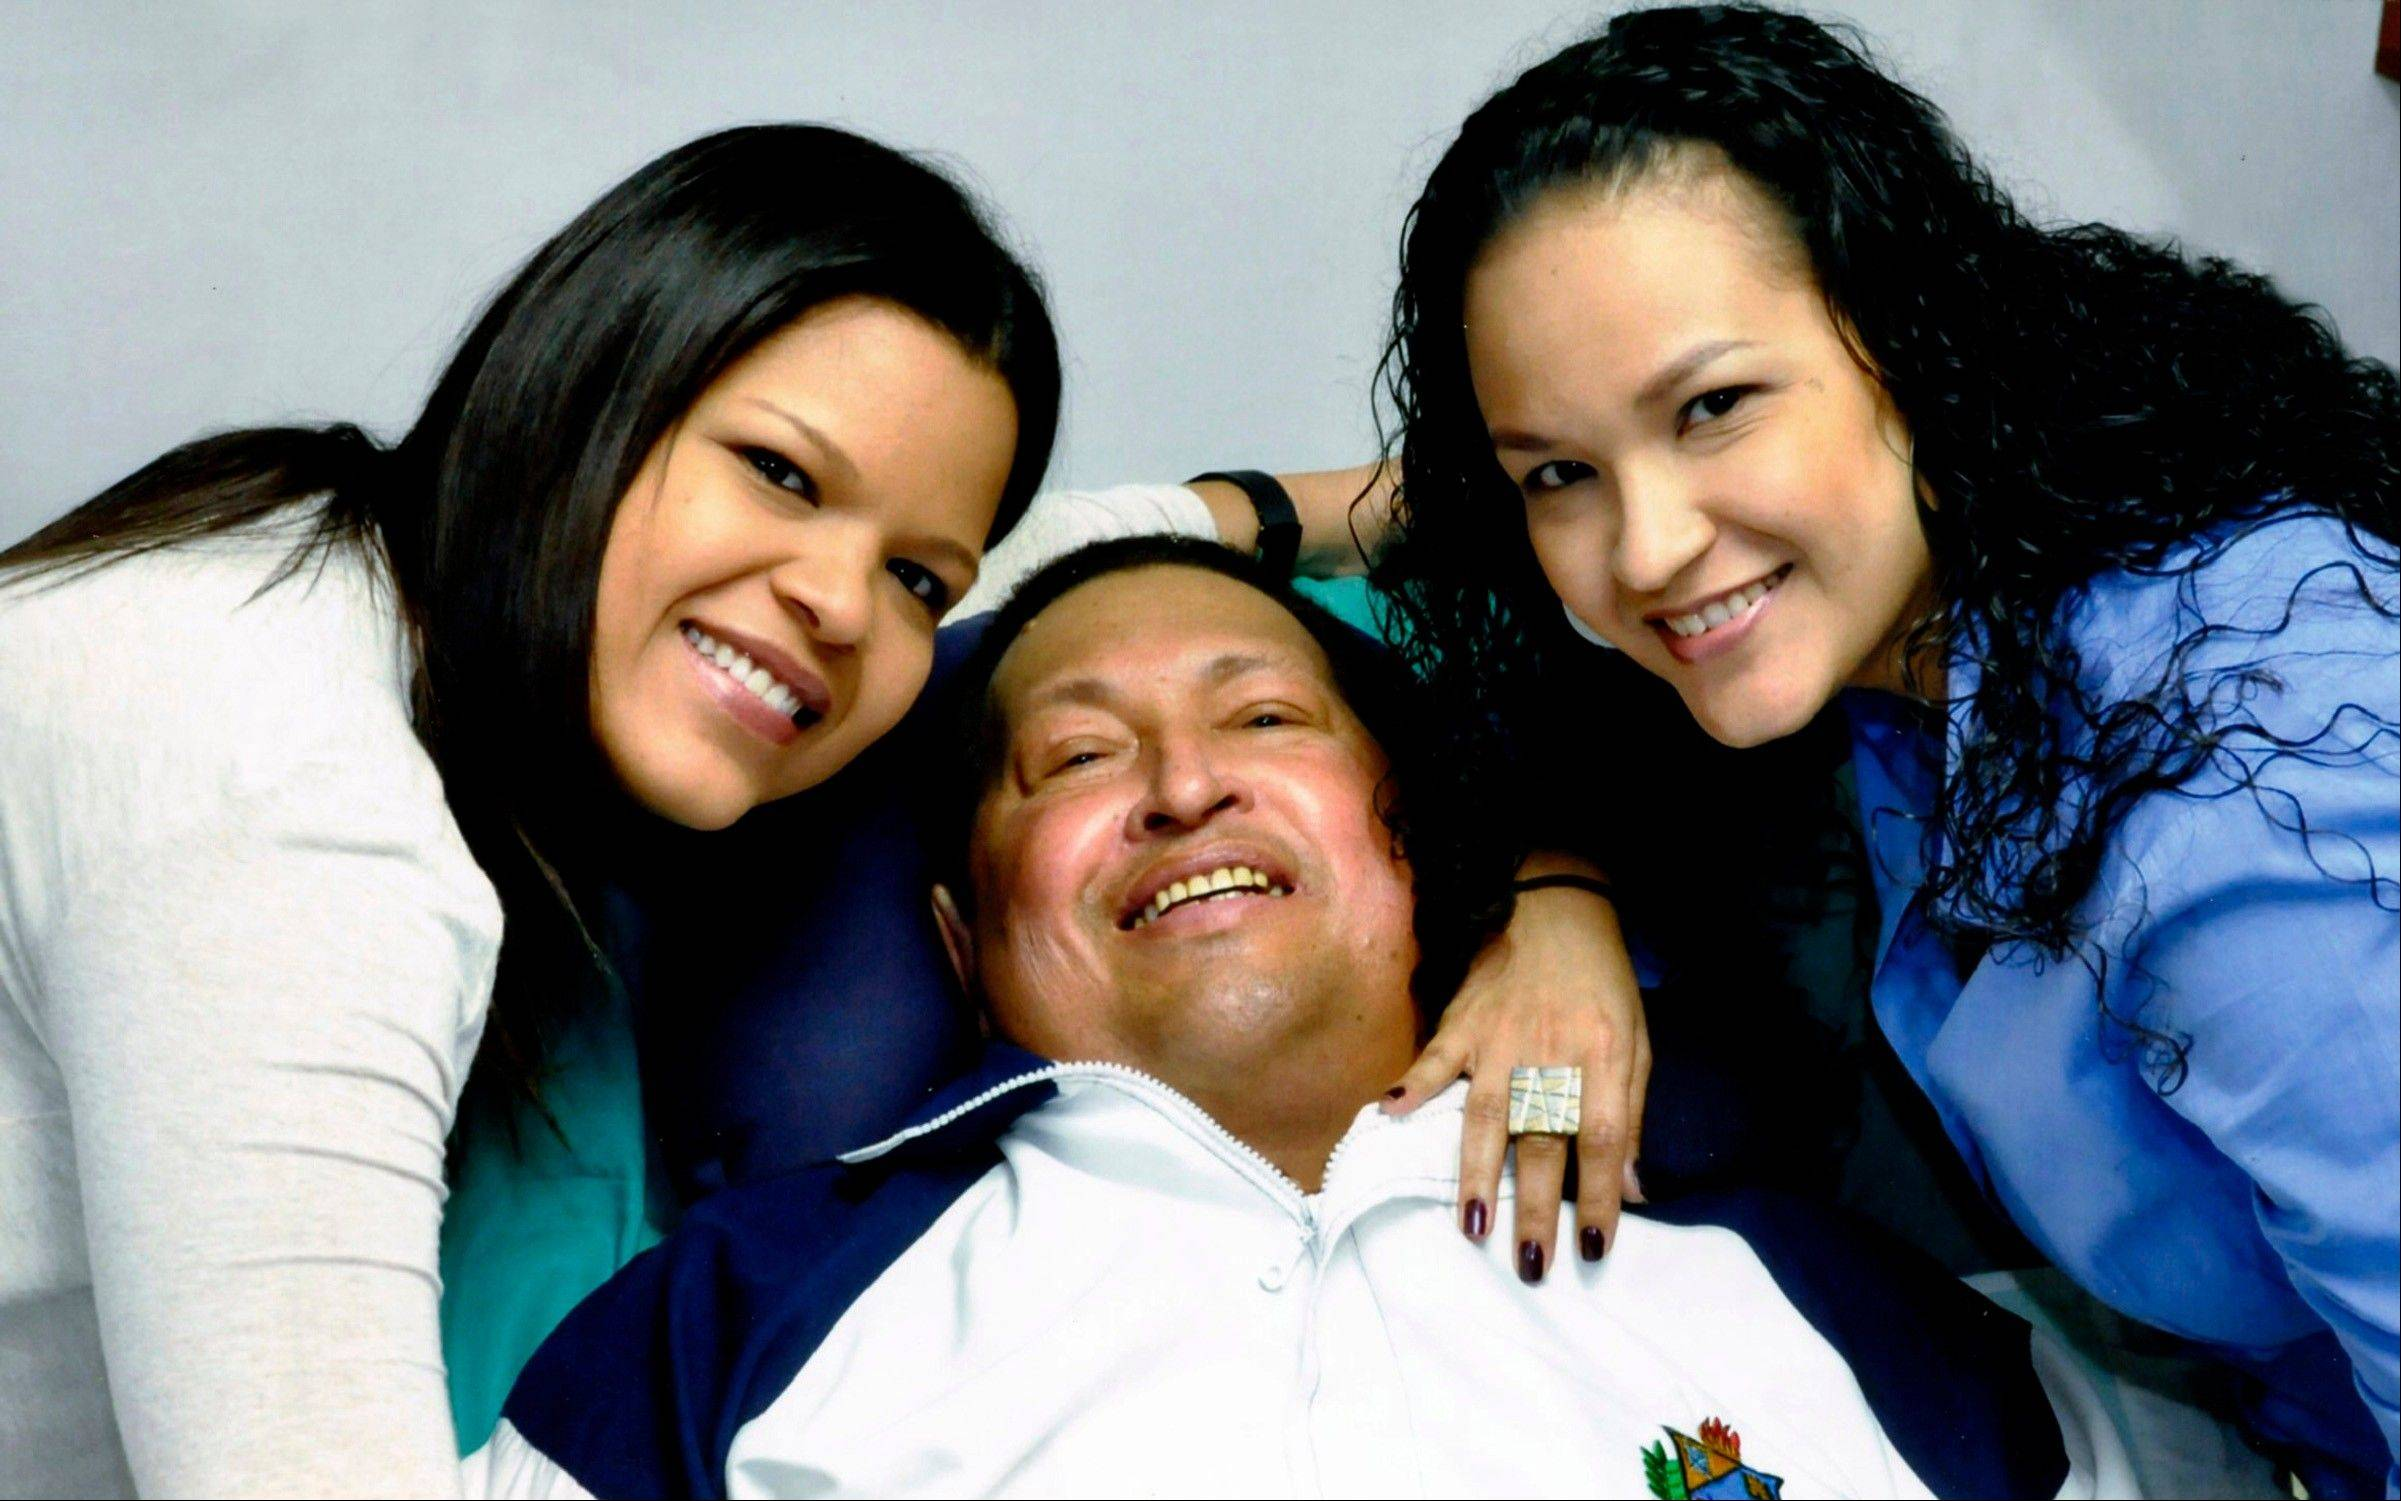 In this file photo released on Feb. 15, 2013 by Miraflores Presidential Press Office, Venezuela's President Hugo Chavez, center, poses for a photo with his daughters, Maria Gabriela, left, and Rosa Virginia in Havana, Cuba,